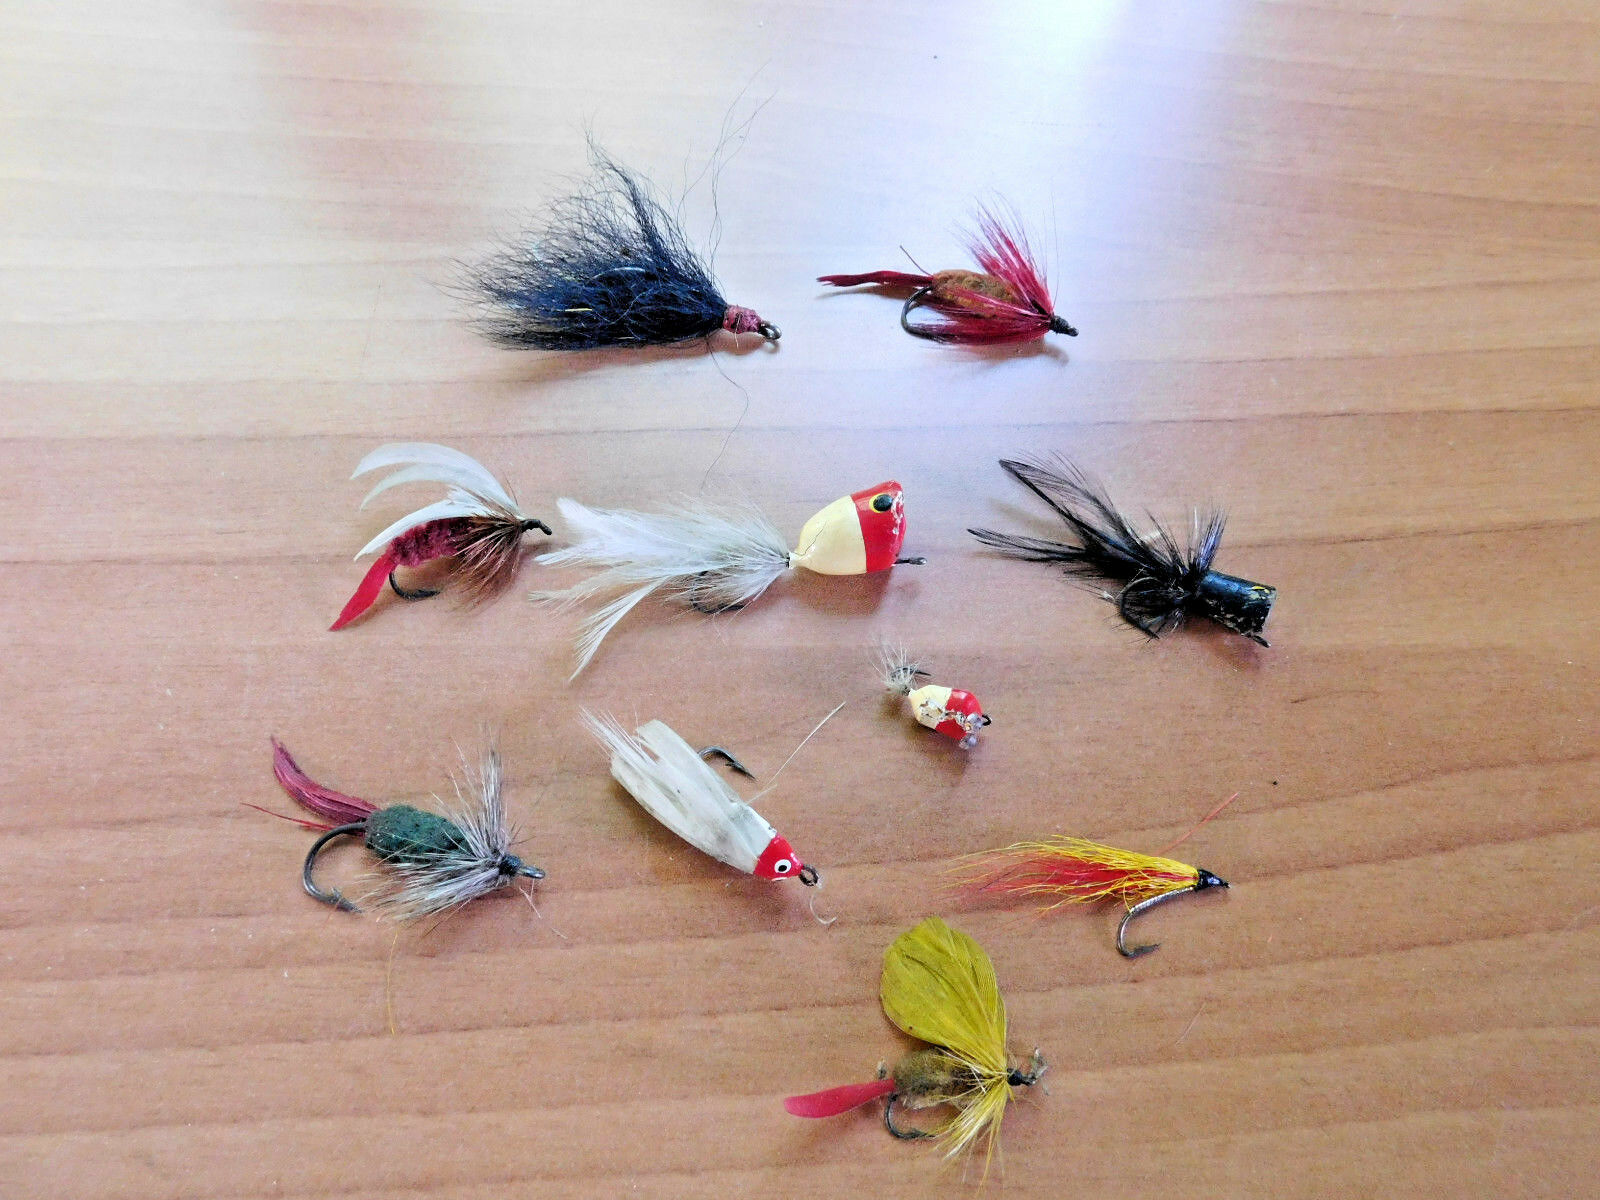 VINTAGE FLY FISHING FLIES BAITS LURES ROD REEL HUM BIRD GLASS EYES POPPER